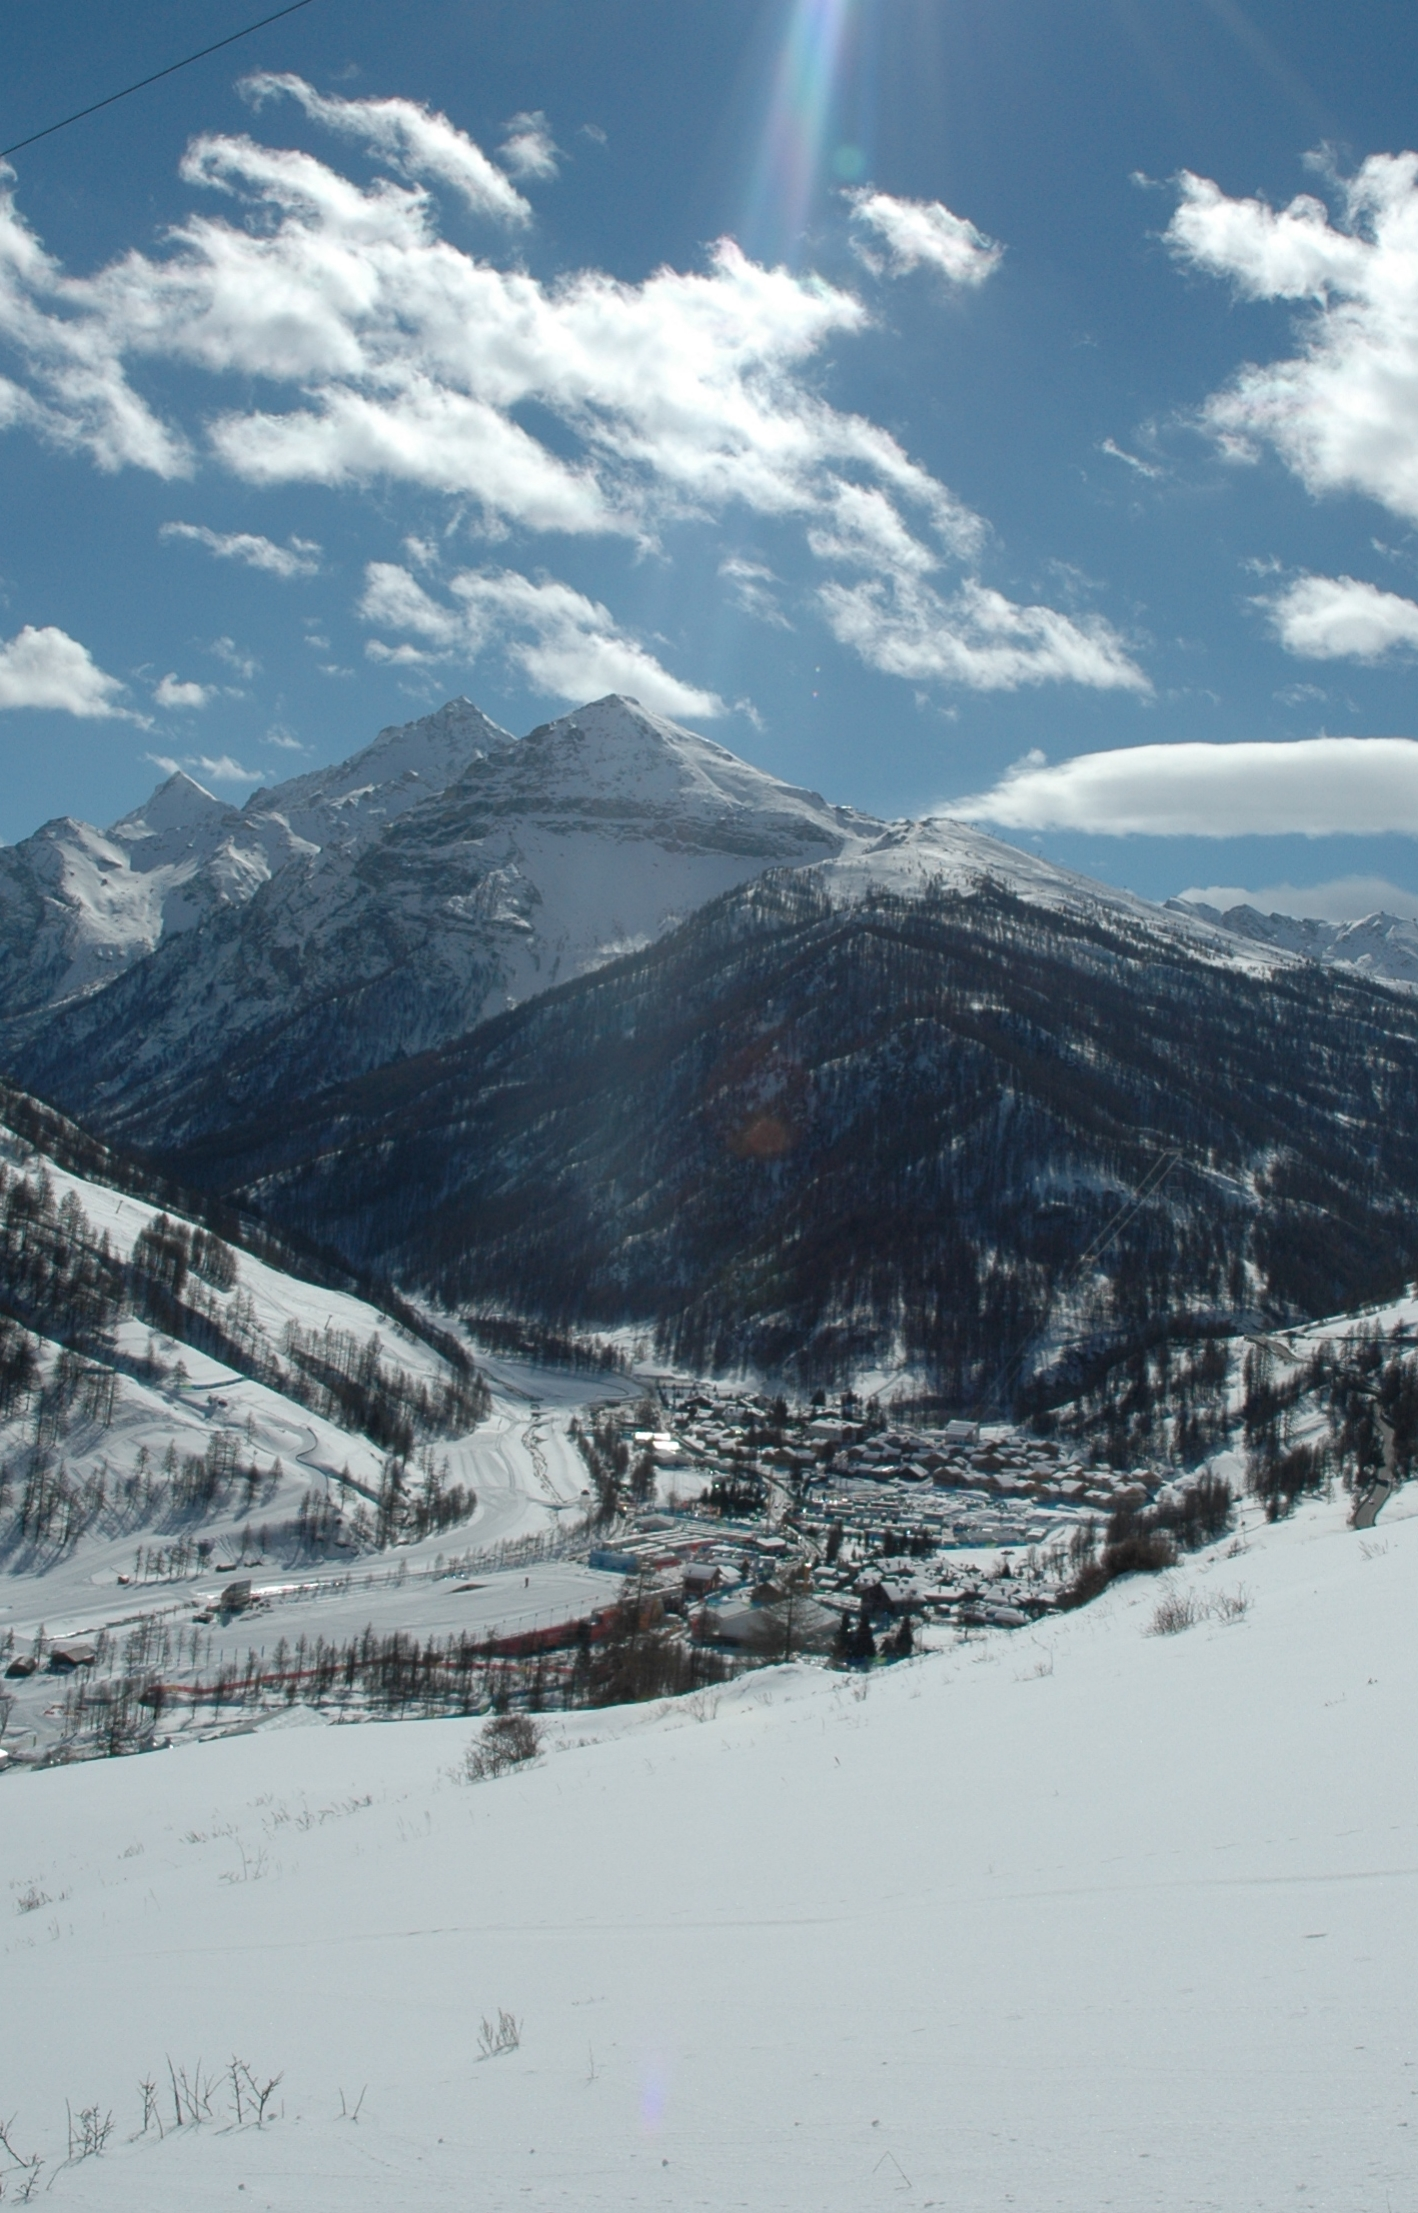 Pragelato within the Val Troncea National Park